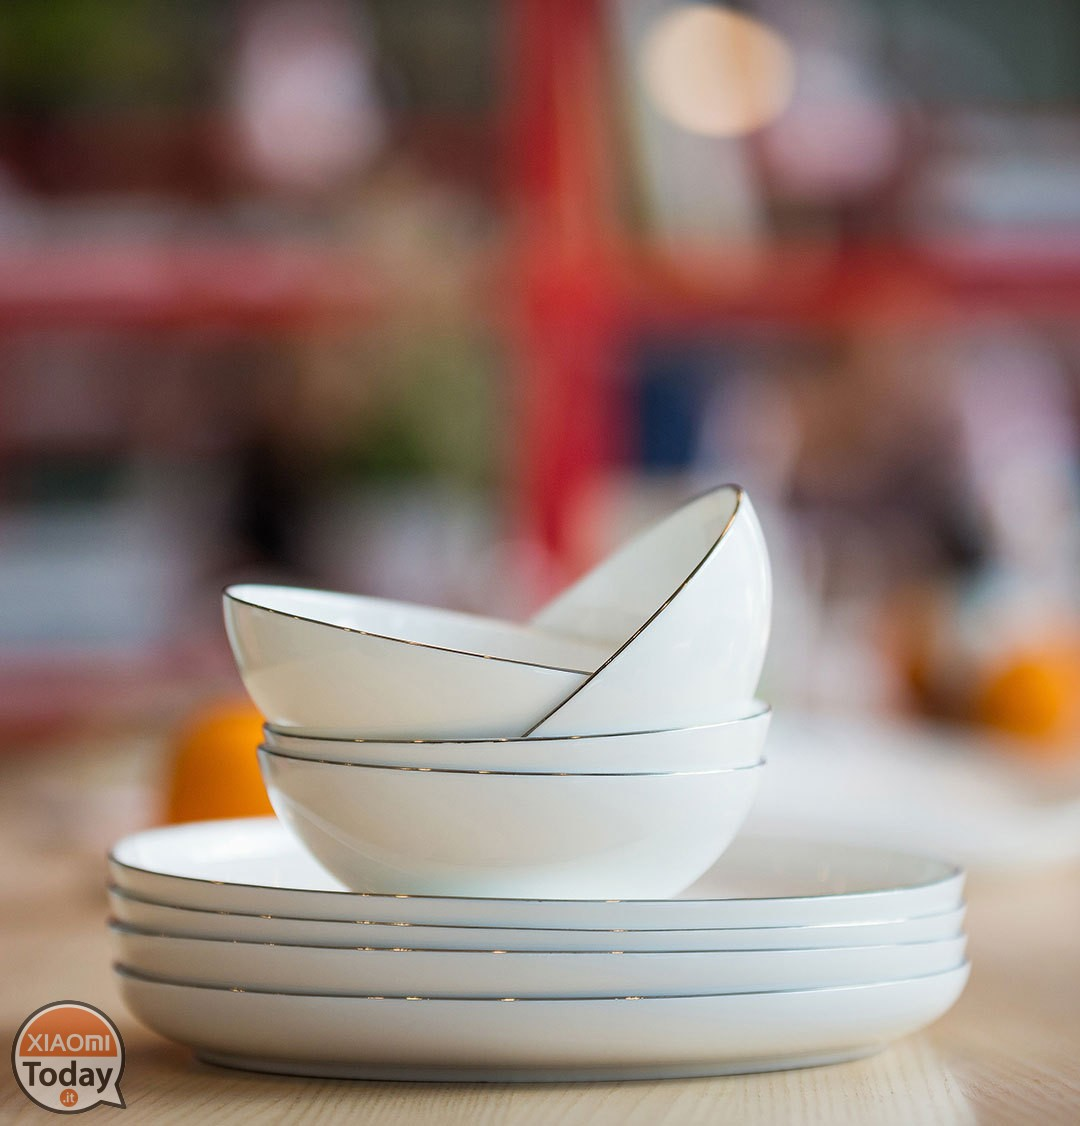 Xiaomi dishes are the new crowdfounding product of today